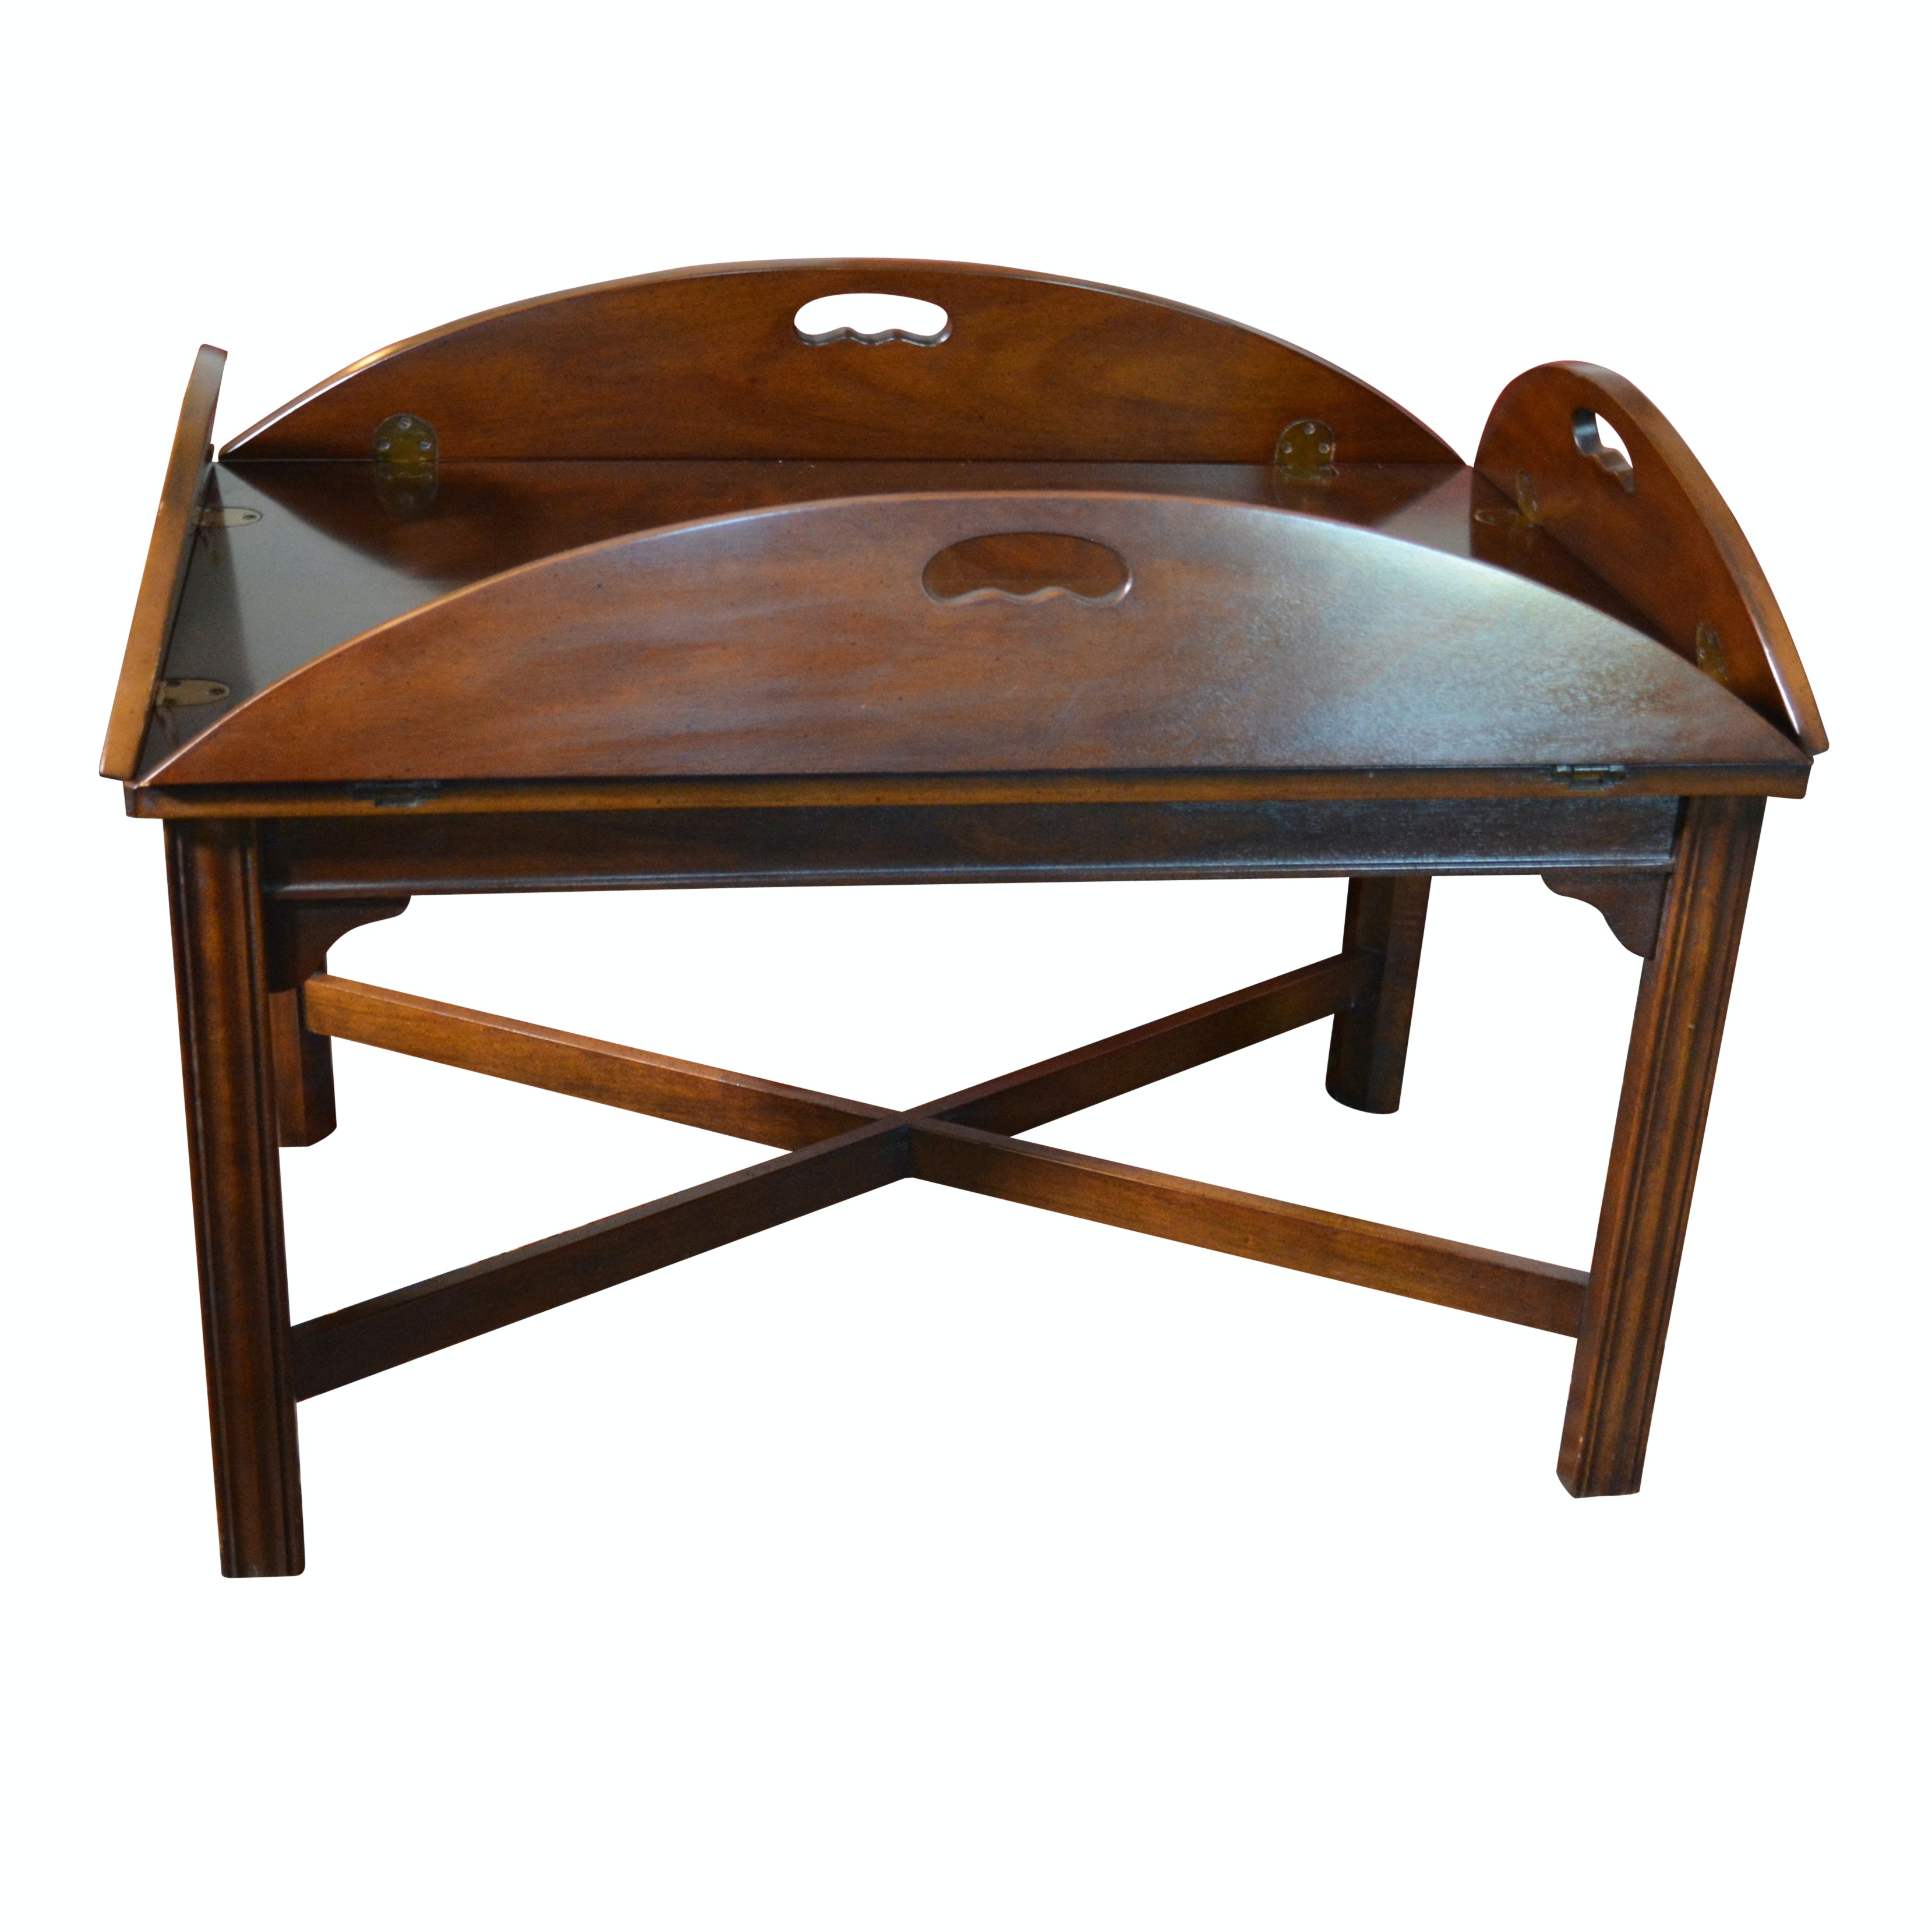 Vintage Butler's Tray Coffee Table by Drexel-Heritage